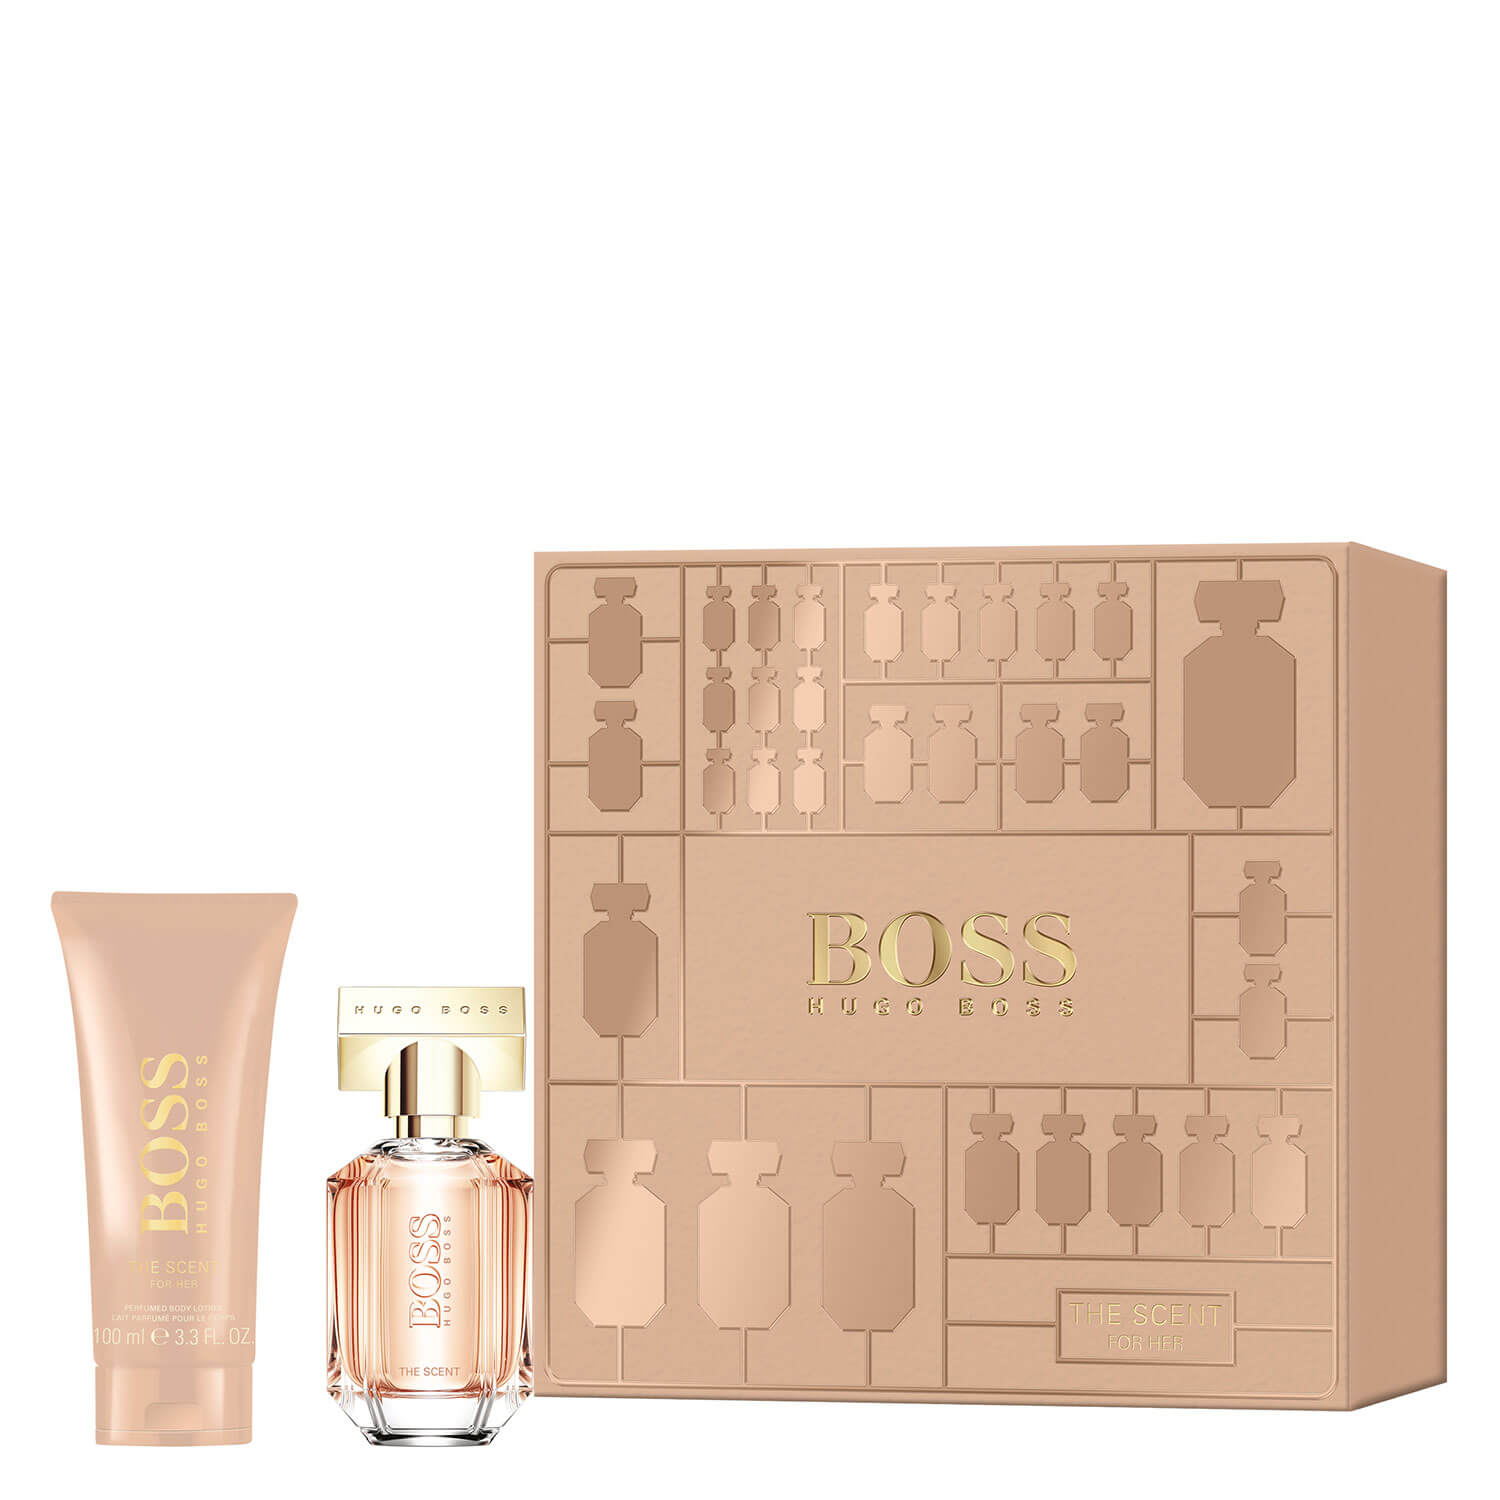 Boss The Scent - Eau de Parfum for Her Kit